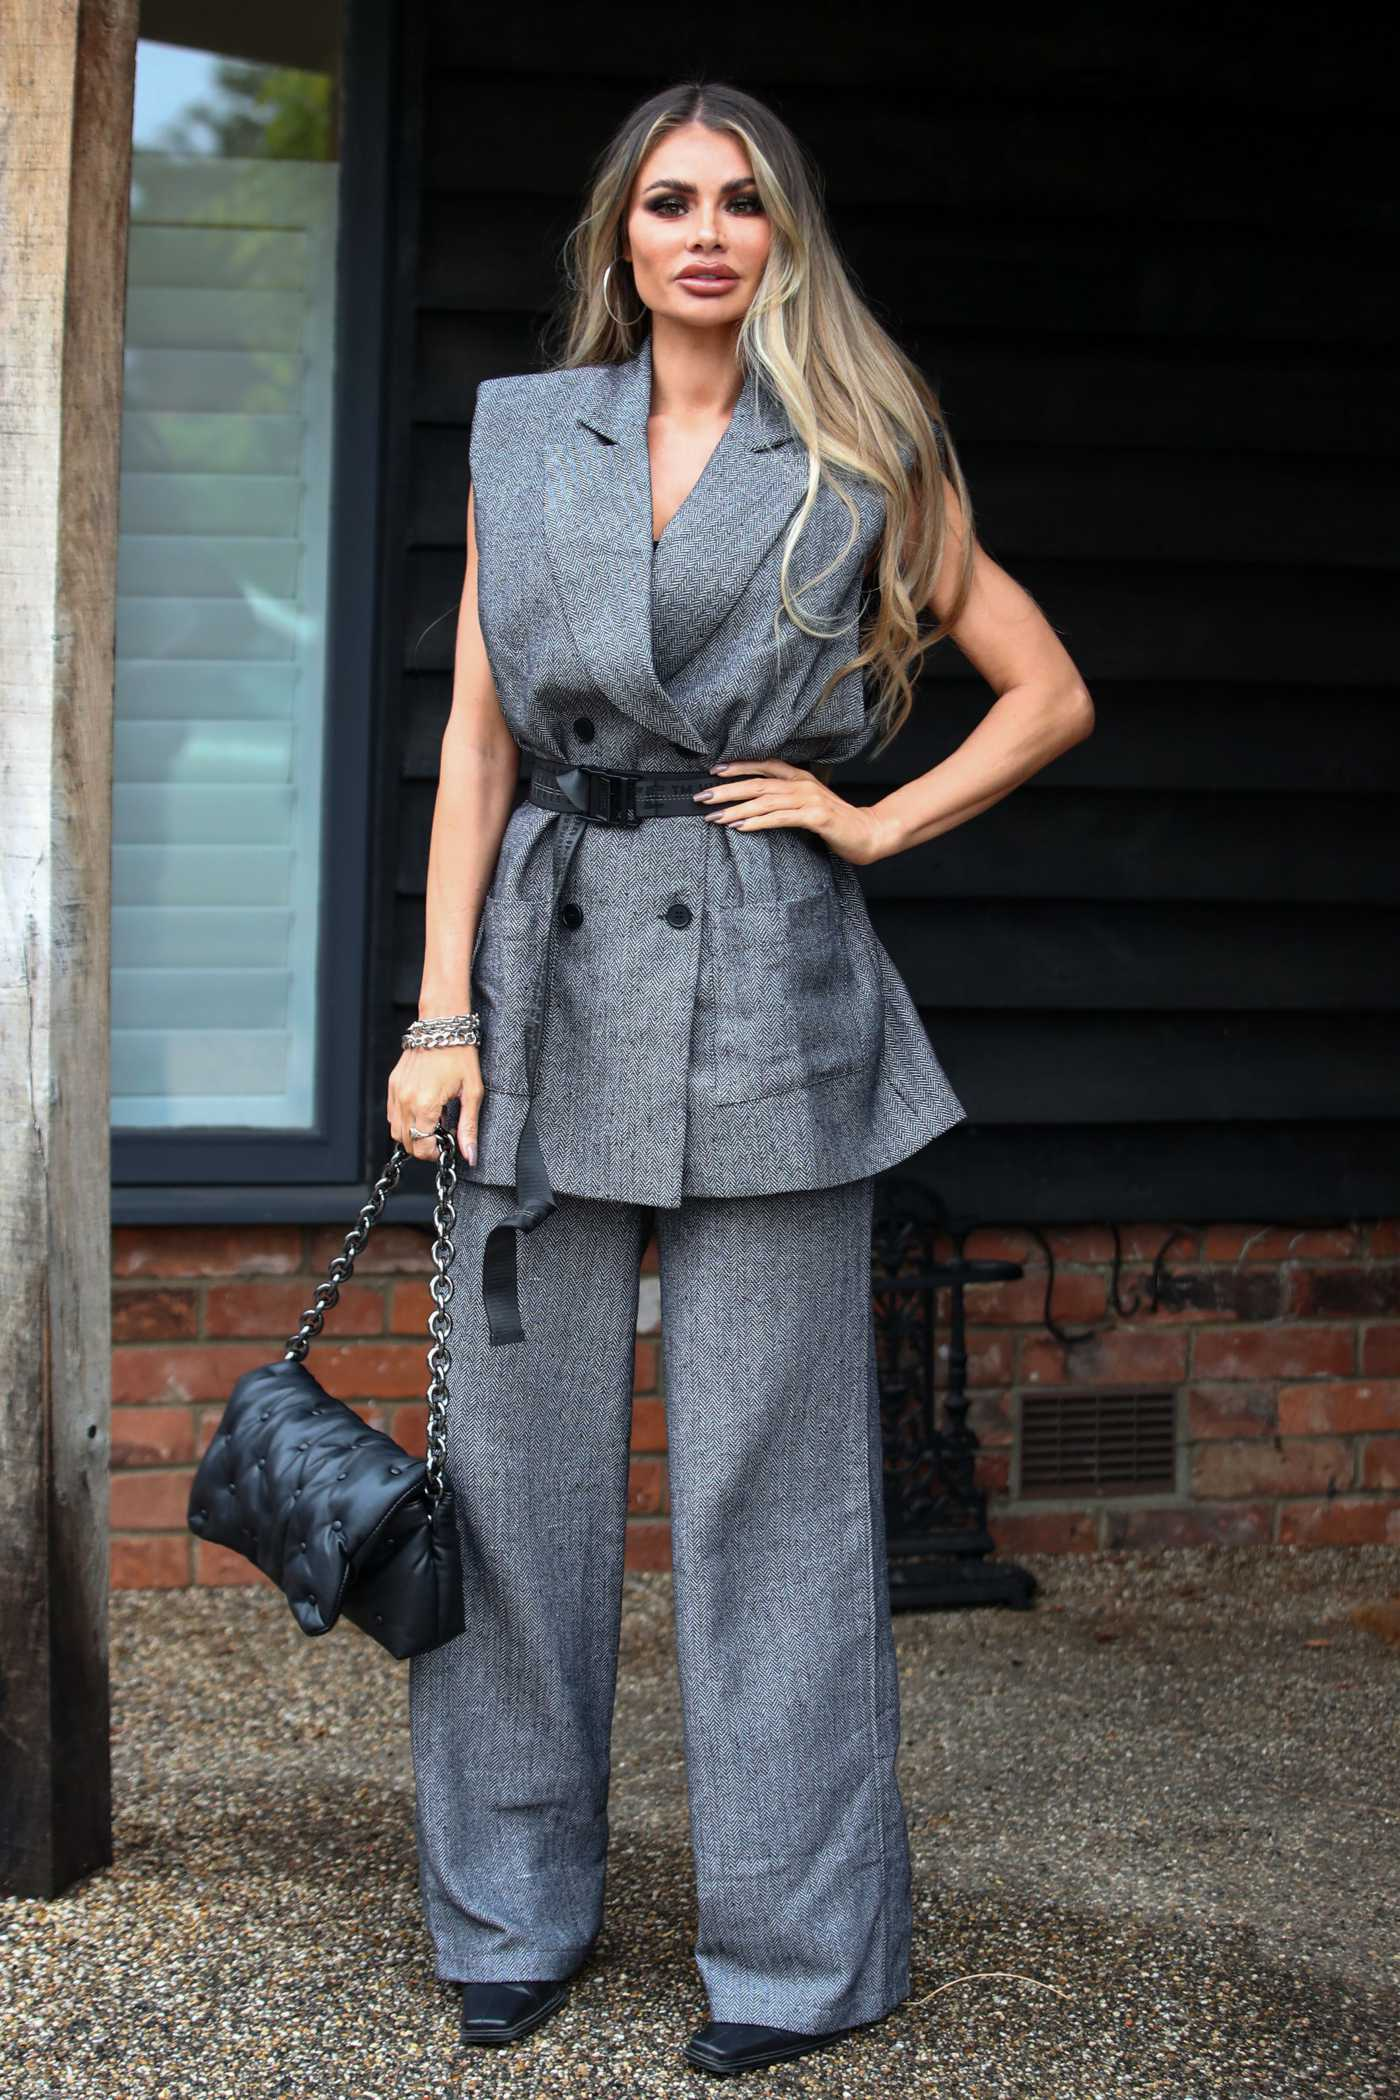 Chloe Sims in a Grey Suit on the Set of The Only Way is Essex TV Show in London 10/04/2020